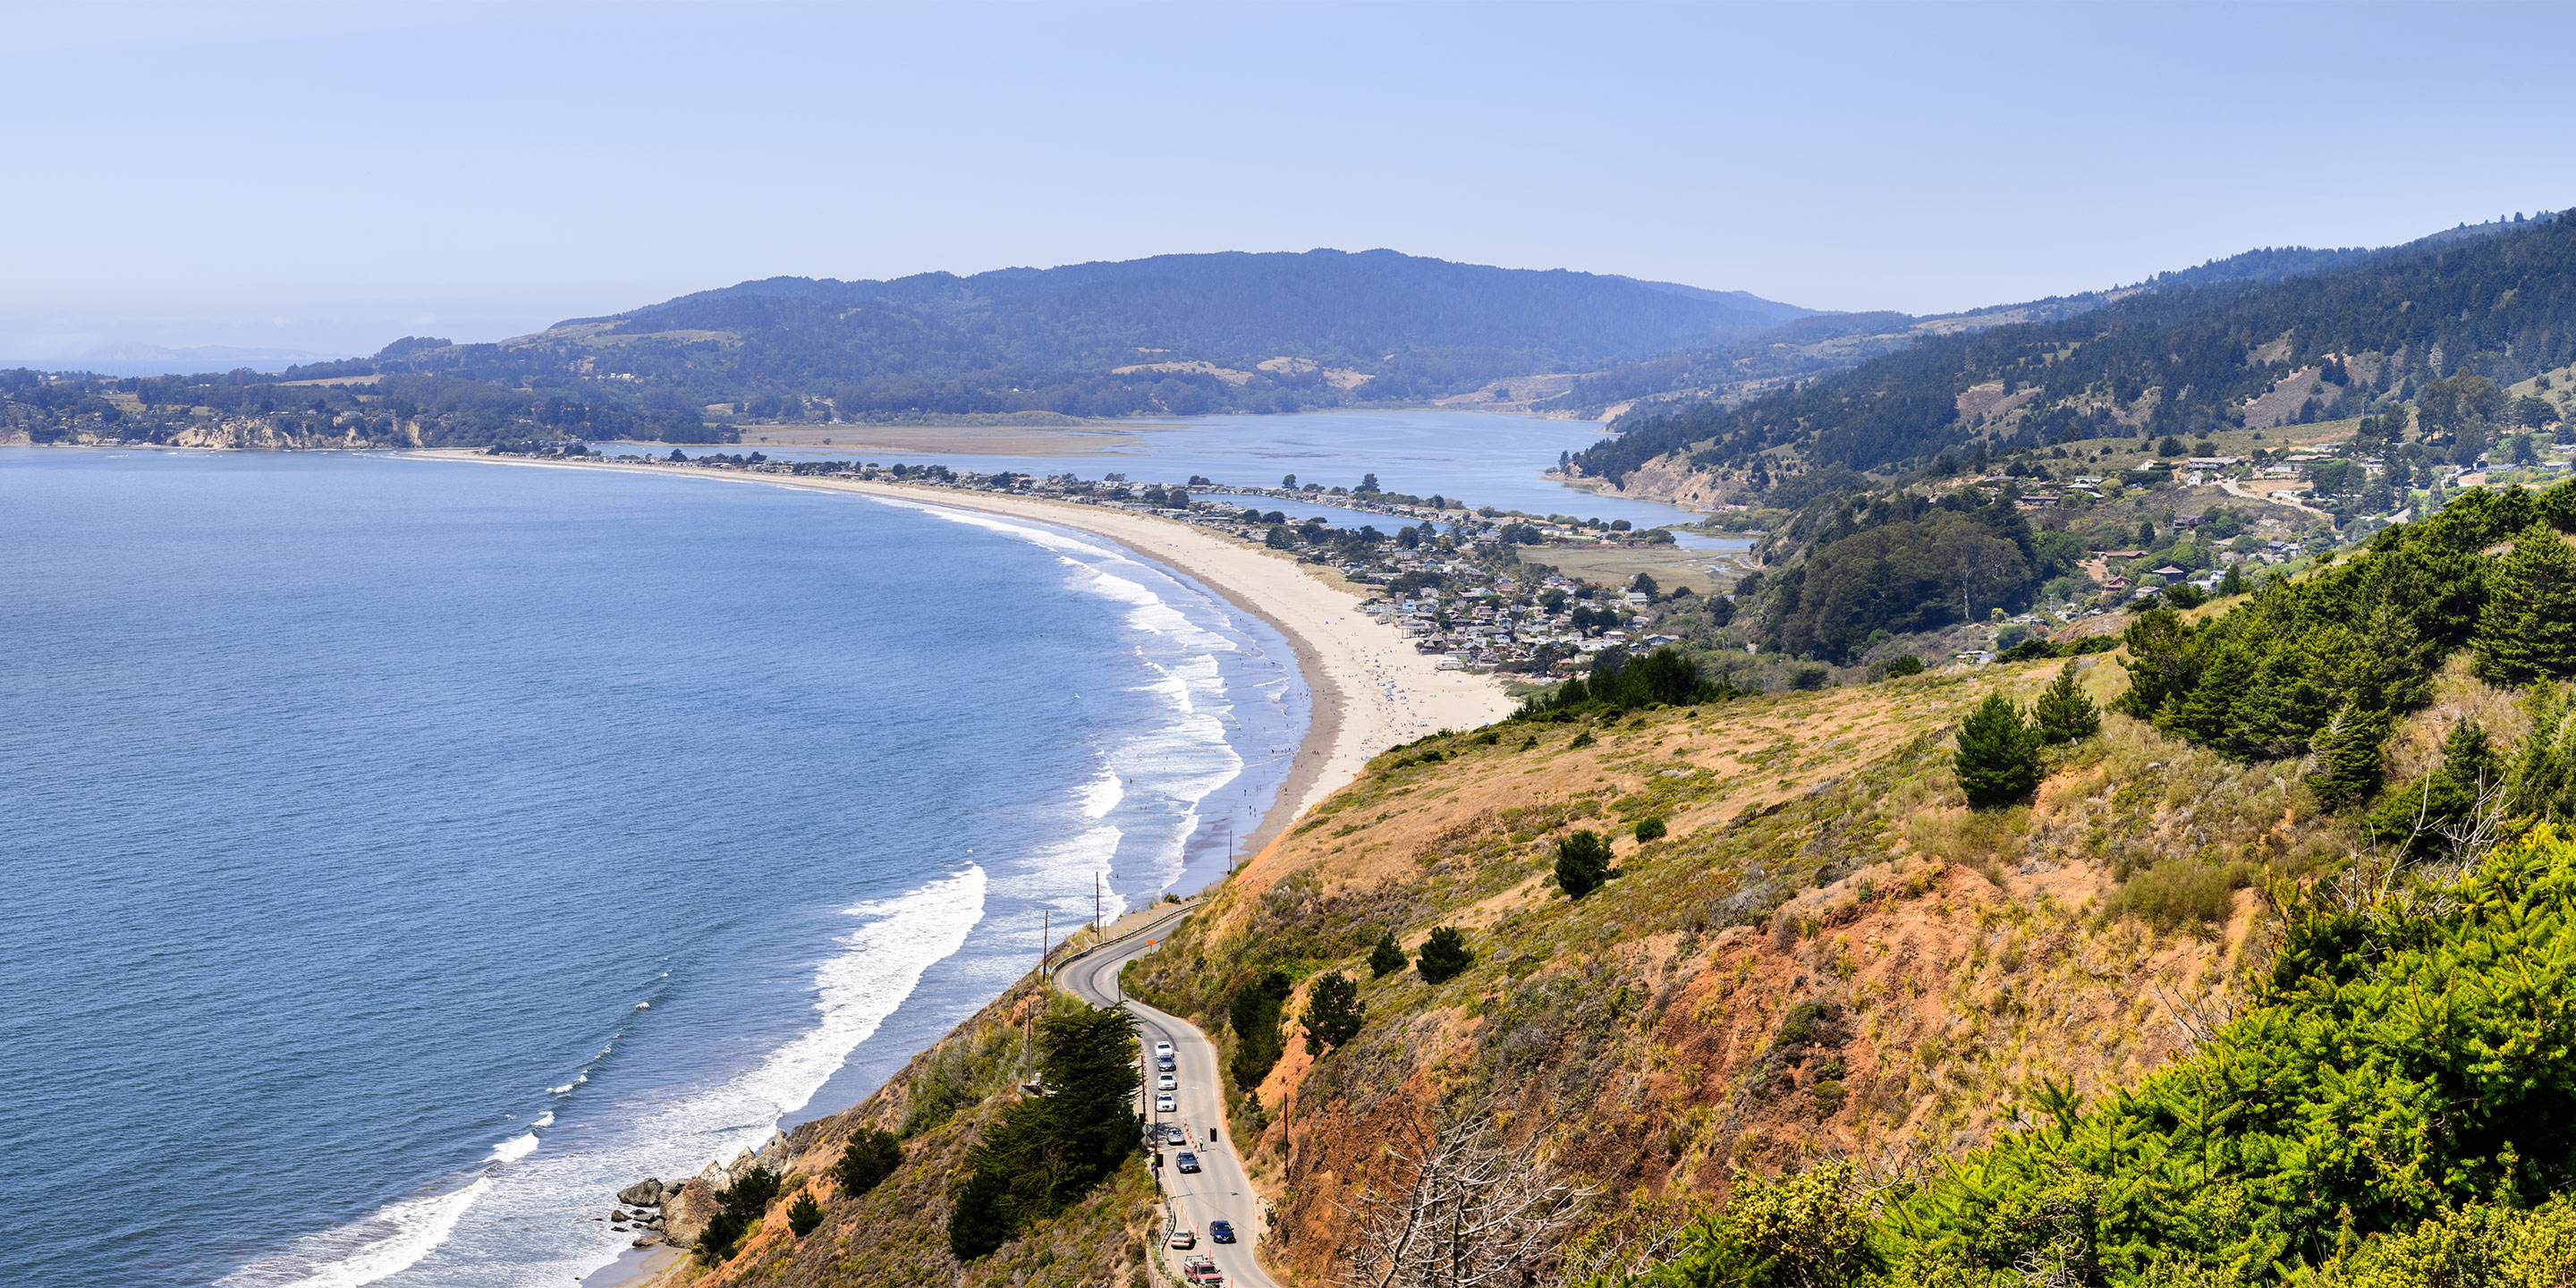 My Insurance Manager >> Marin County Day Road Trip | Via